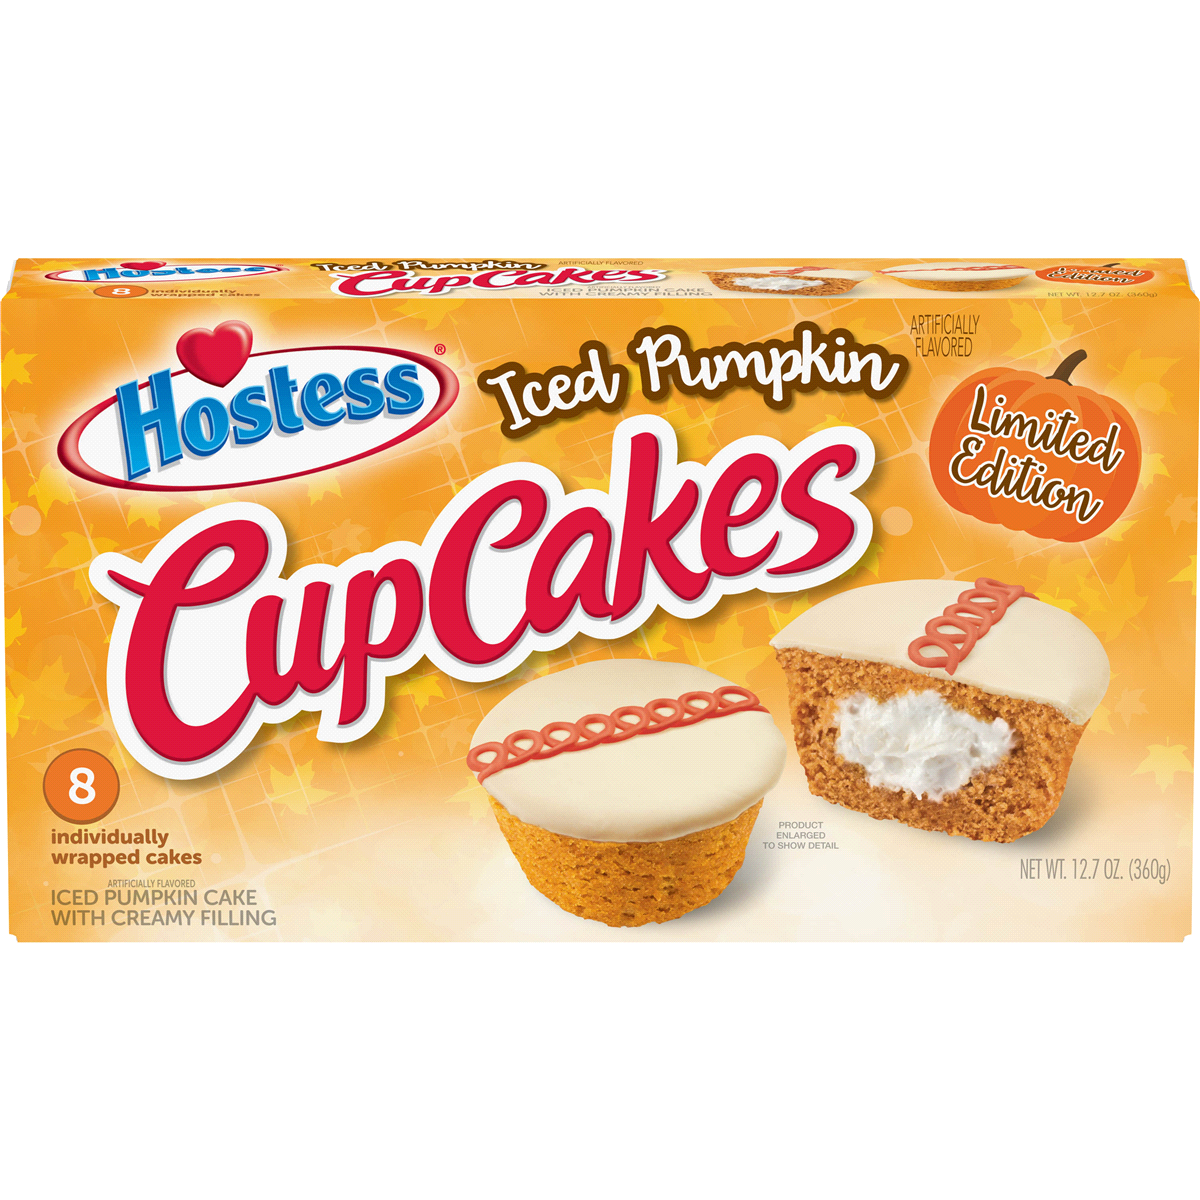 Hostess Is Releasing A Pumpkin Version Of Its Iconic Cupcakes And People Are Seriously Excited